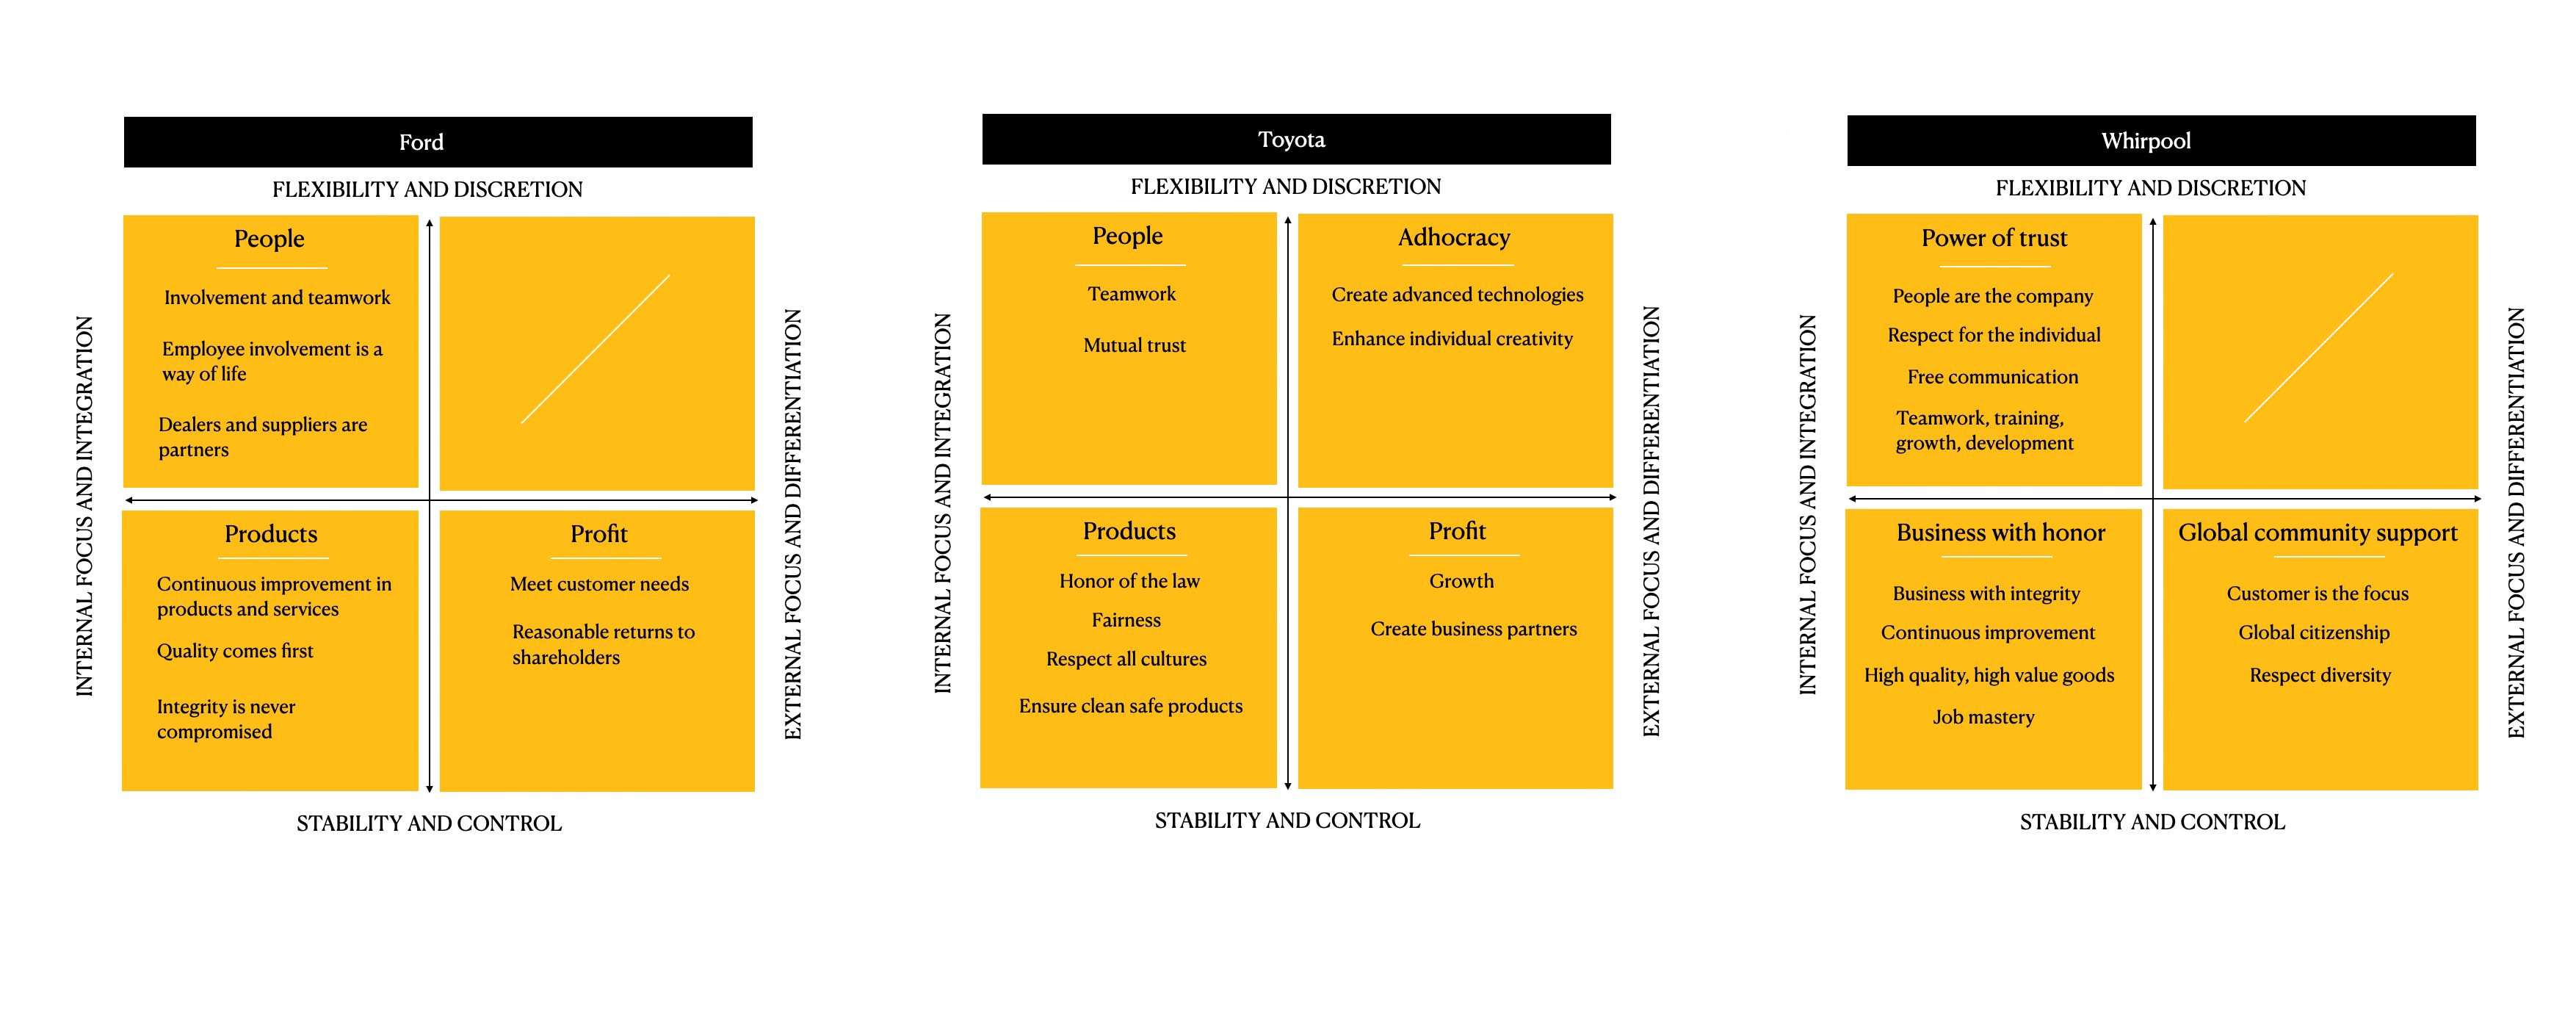 Image showing framework applied to mission, vision and values of Toyora, Whirpool and Ford.